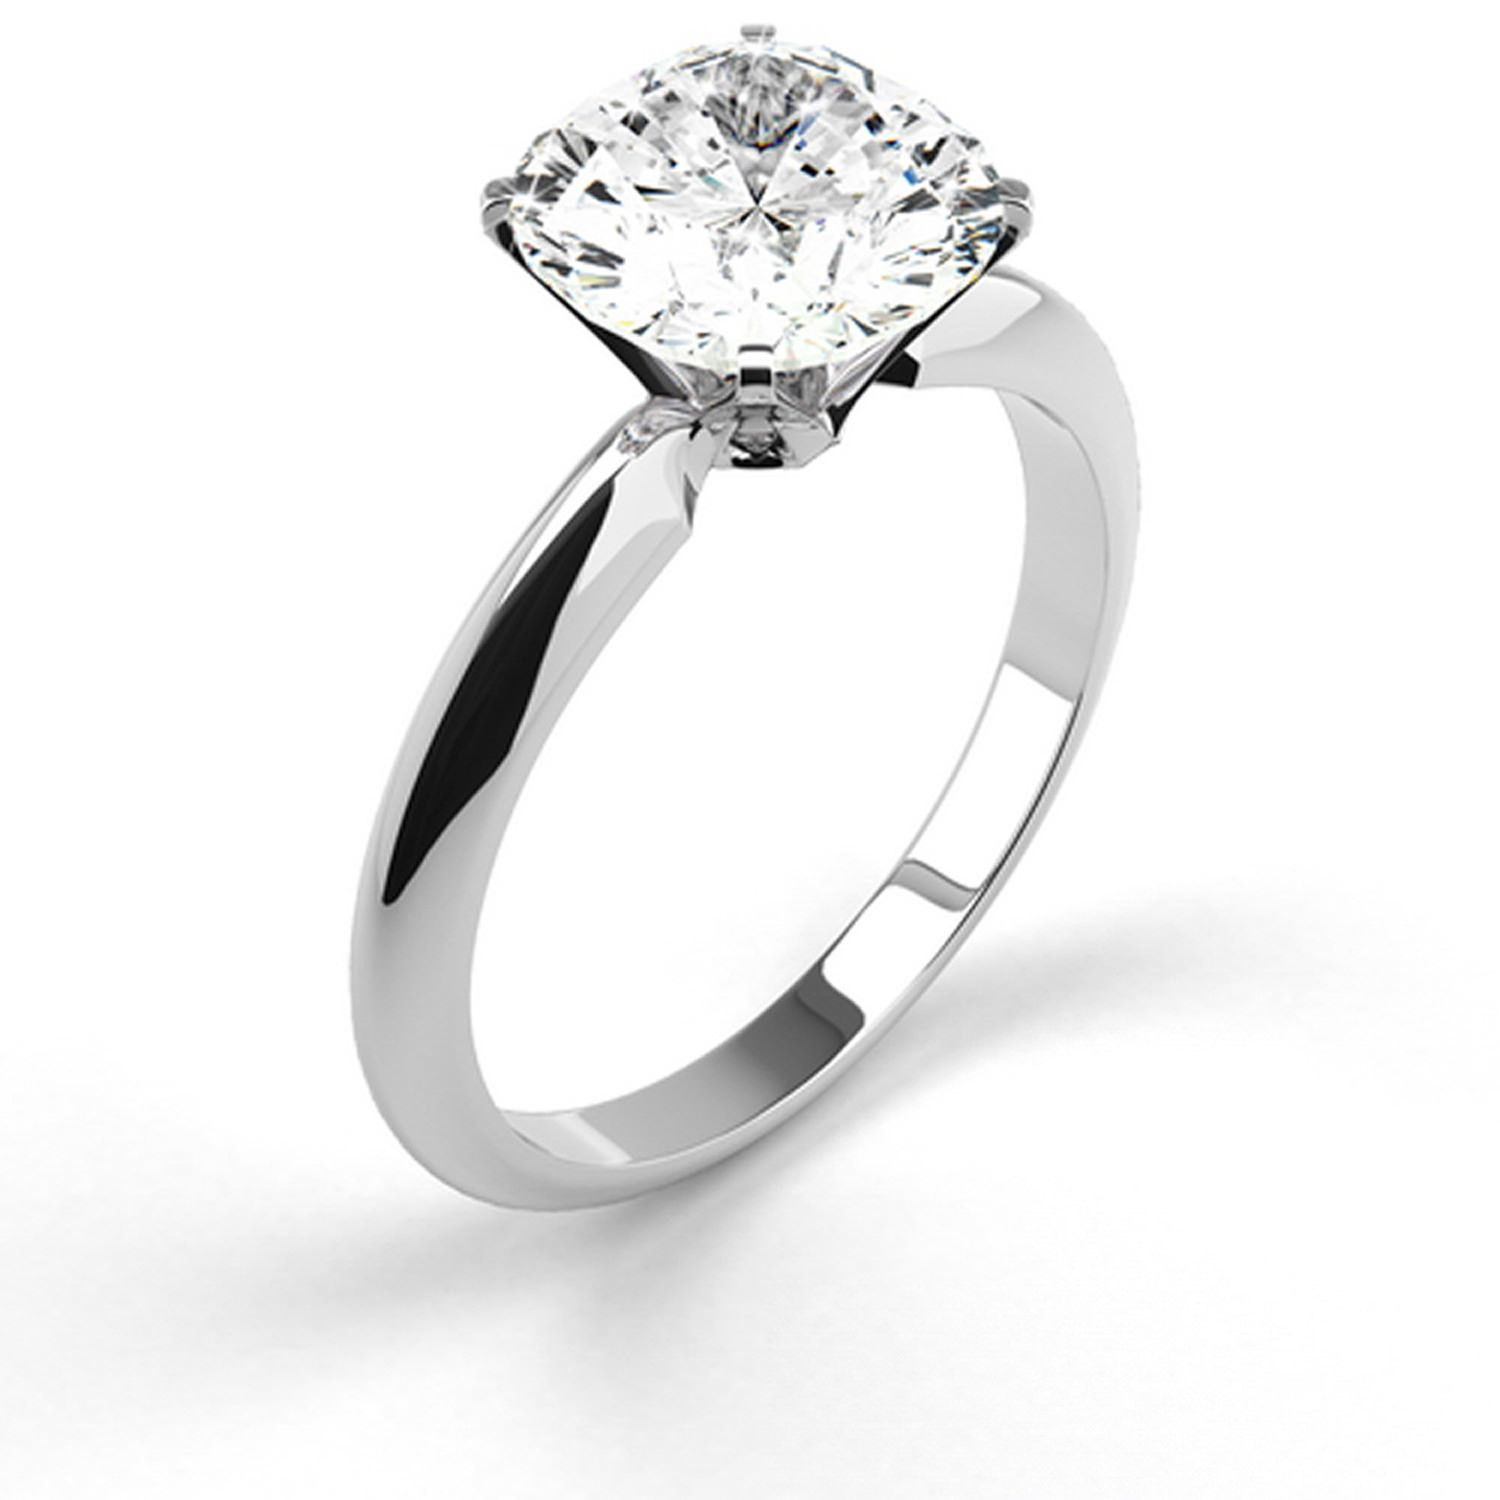 diamond platinum ring cut princess cool jewellery vfsnxxz rings engagement cathedral settings